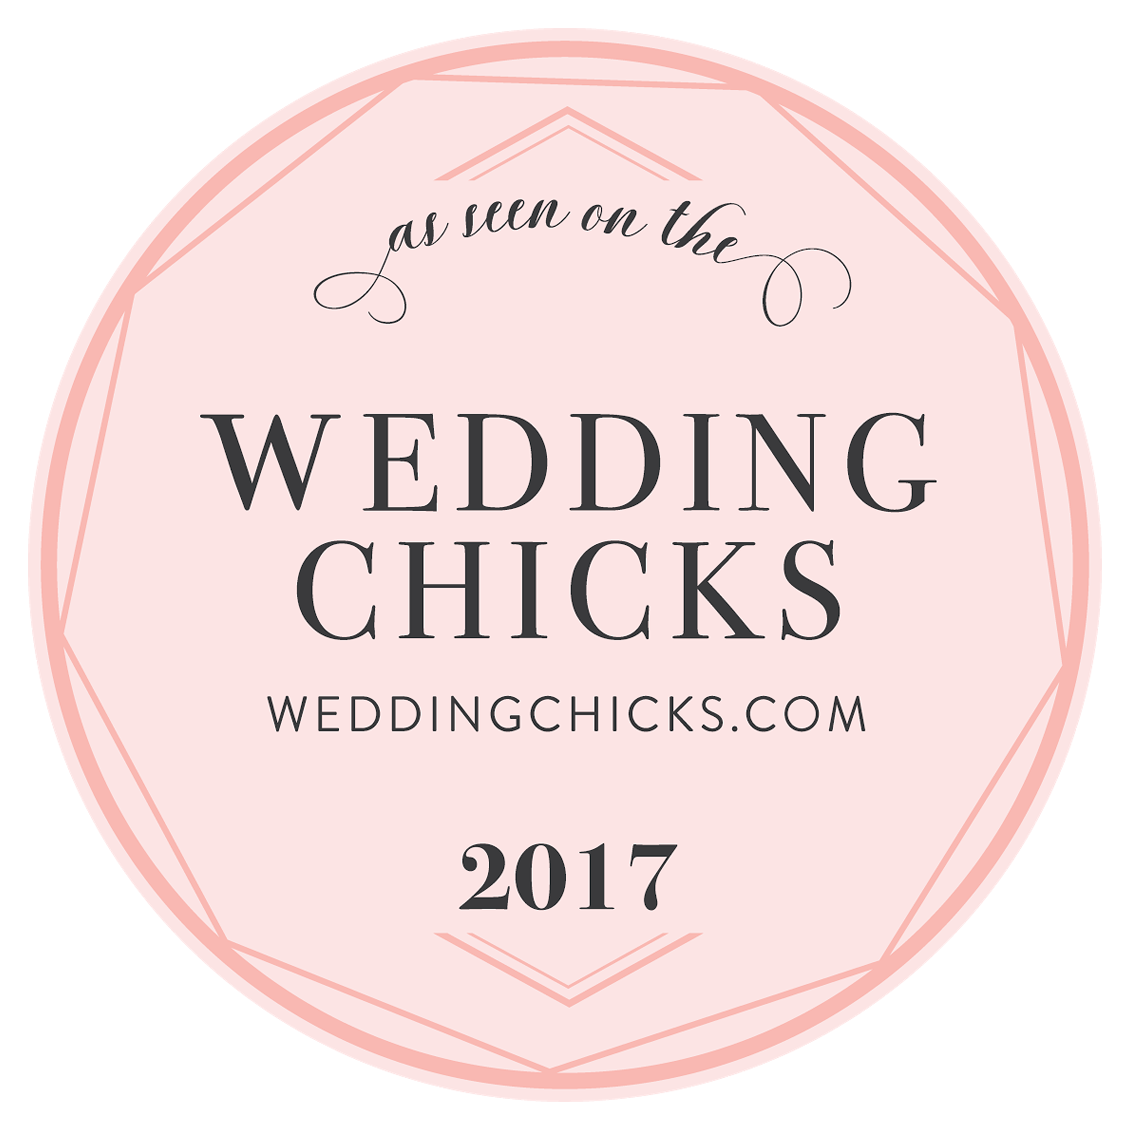 FeaturedBadge-Wedding-Chicks-large.png